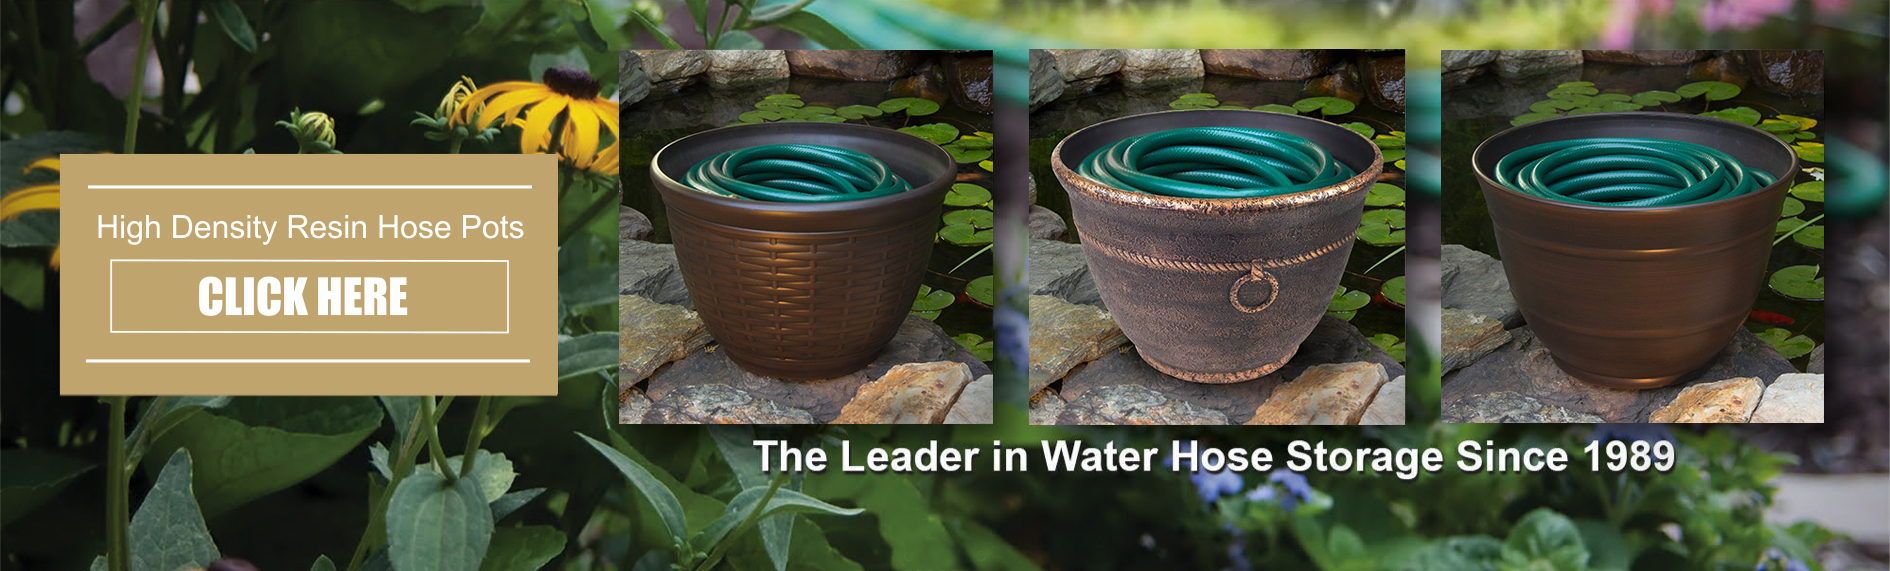 High Density Resin Hose Pots